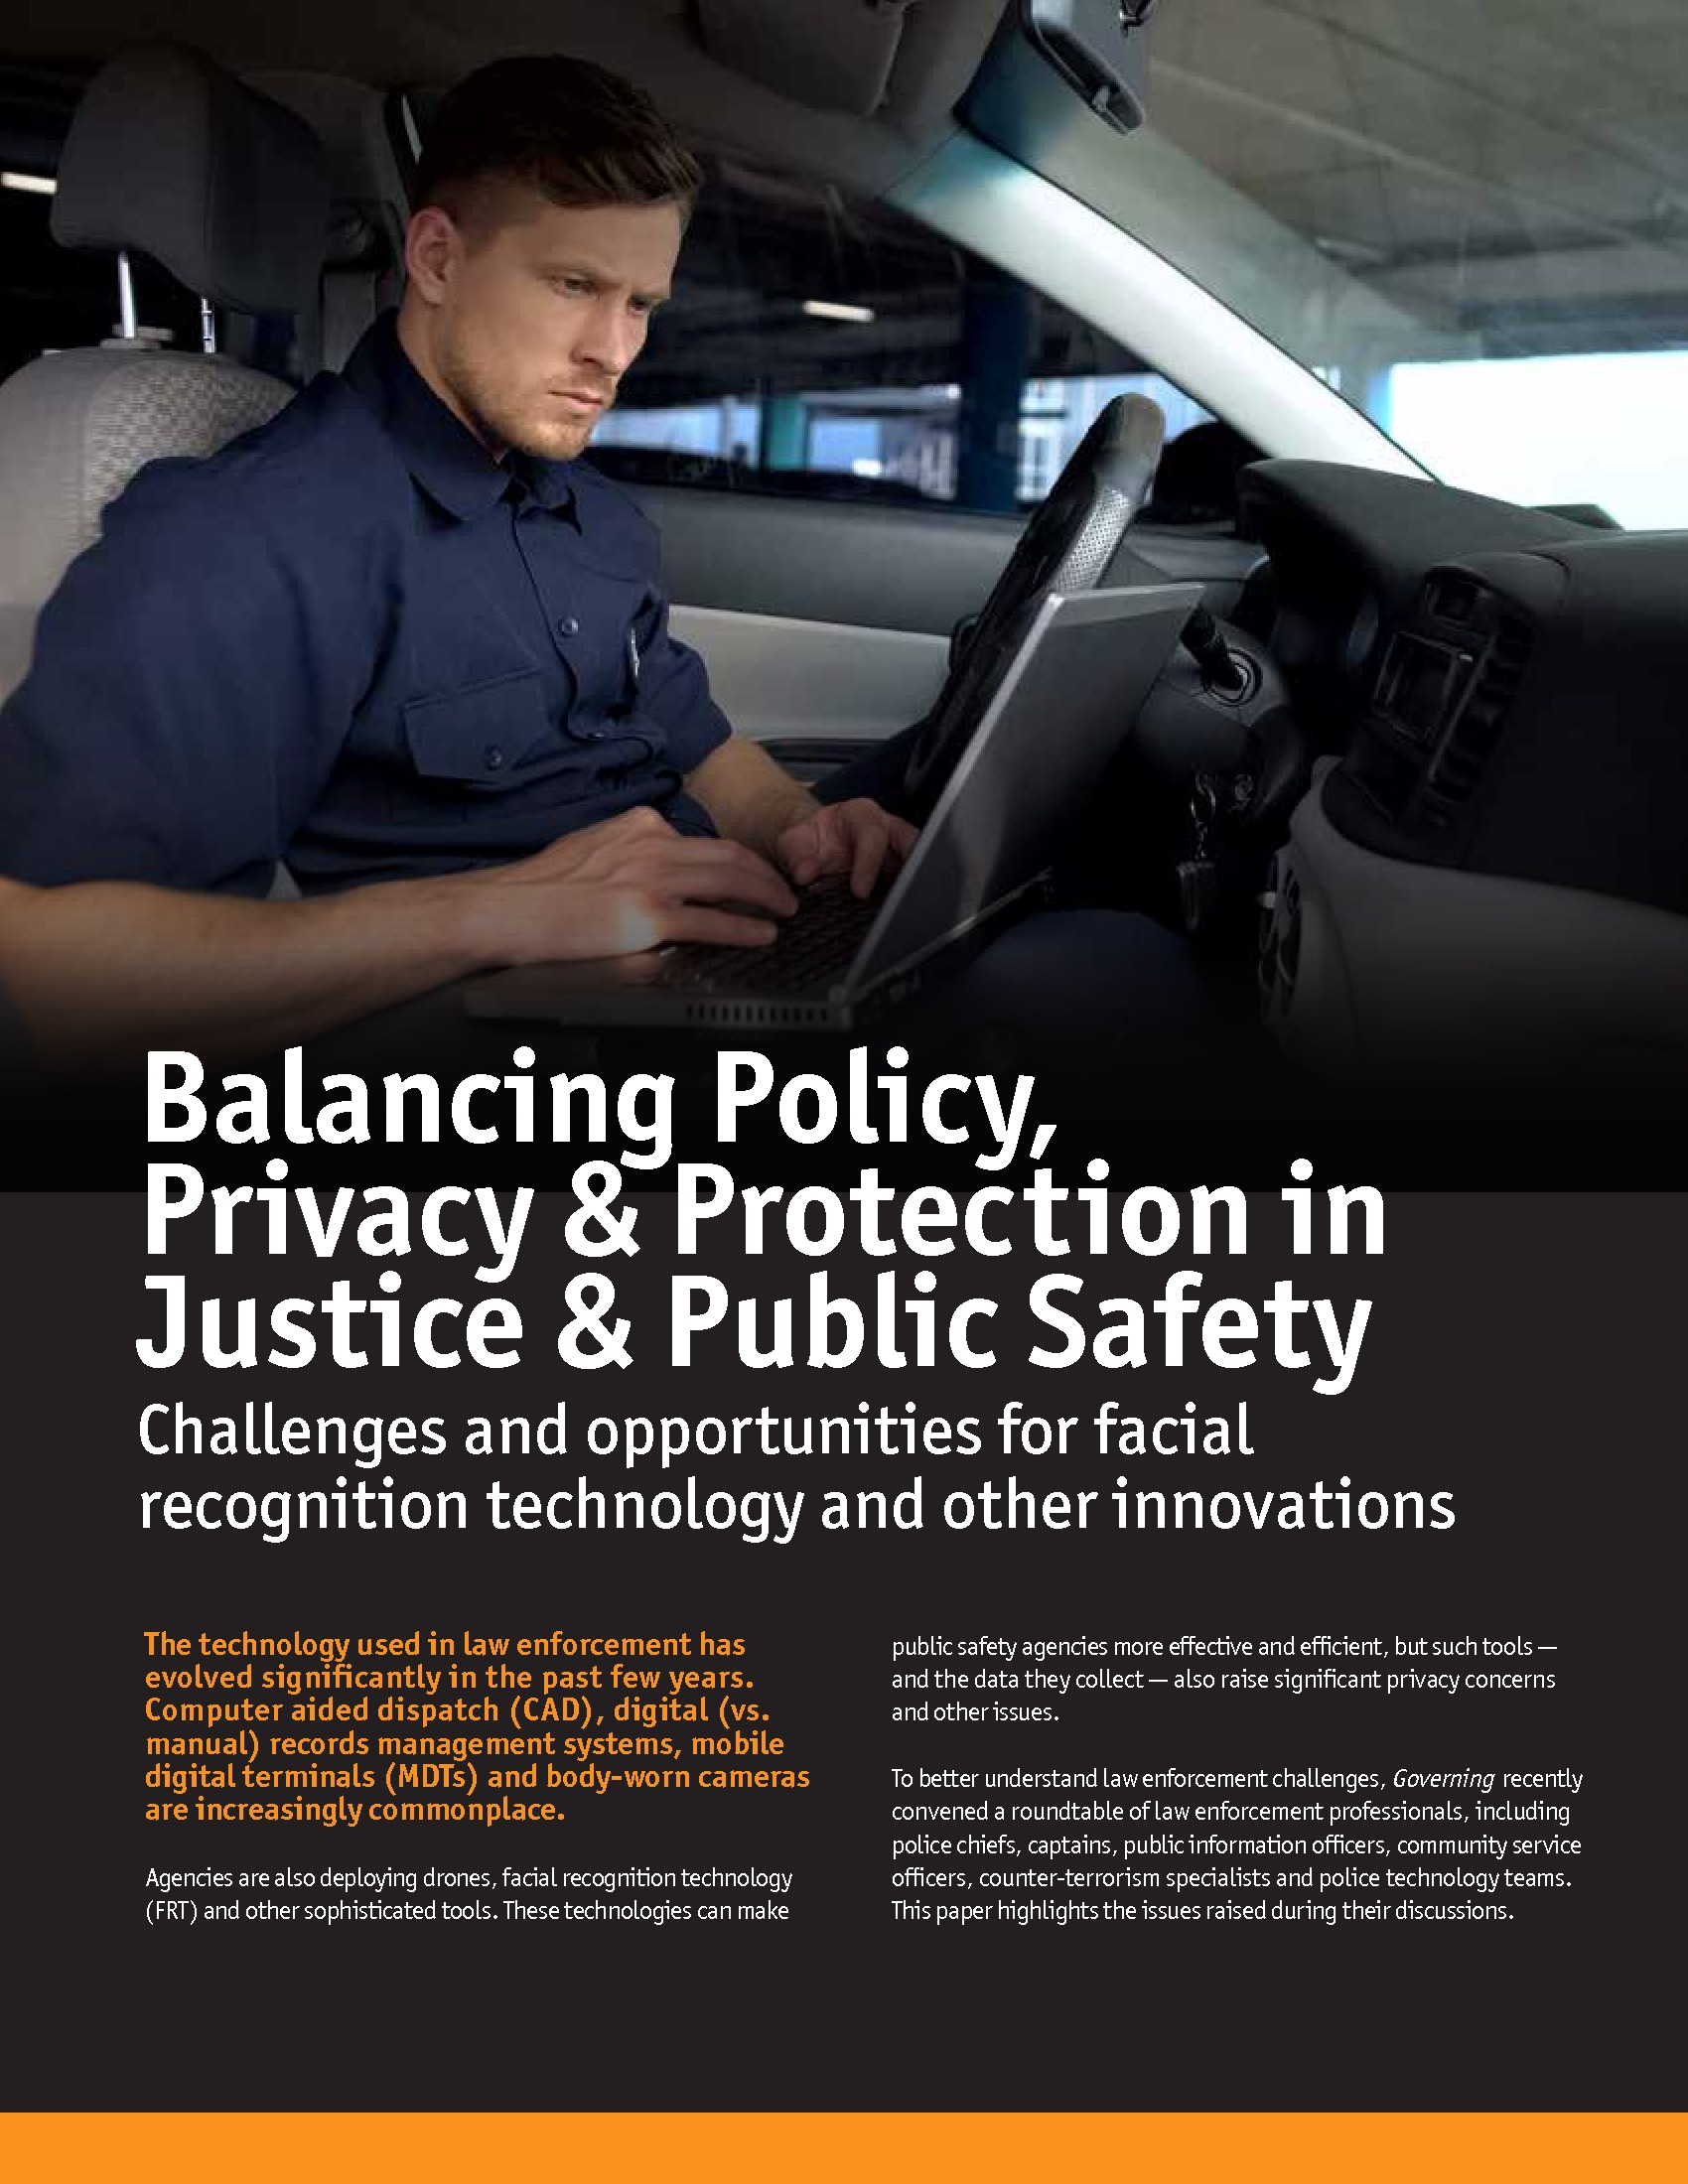 Balancing Policy, Privacy & Protection in Justice & Public Safety